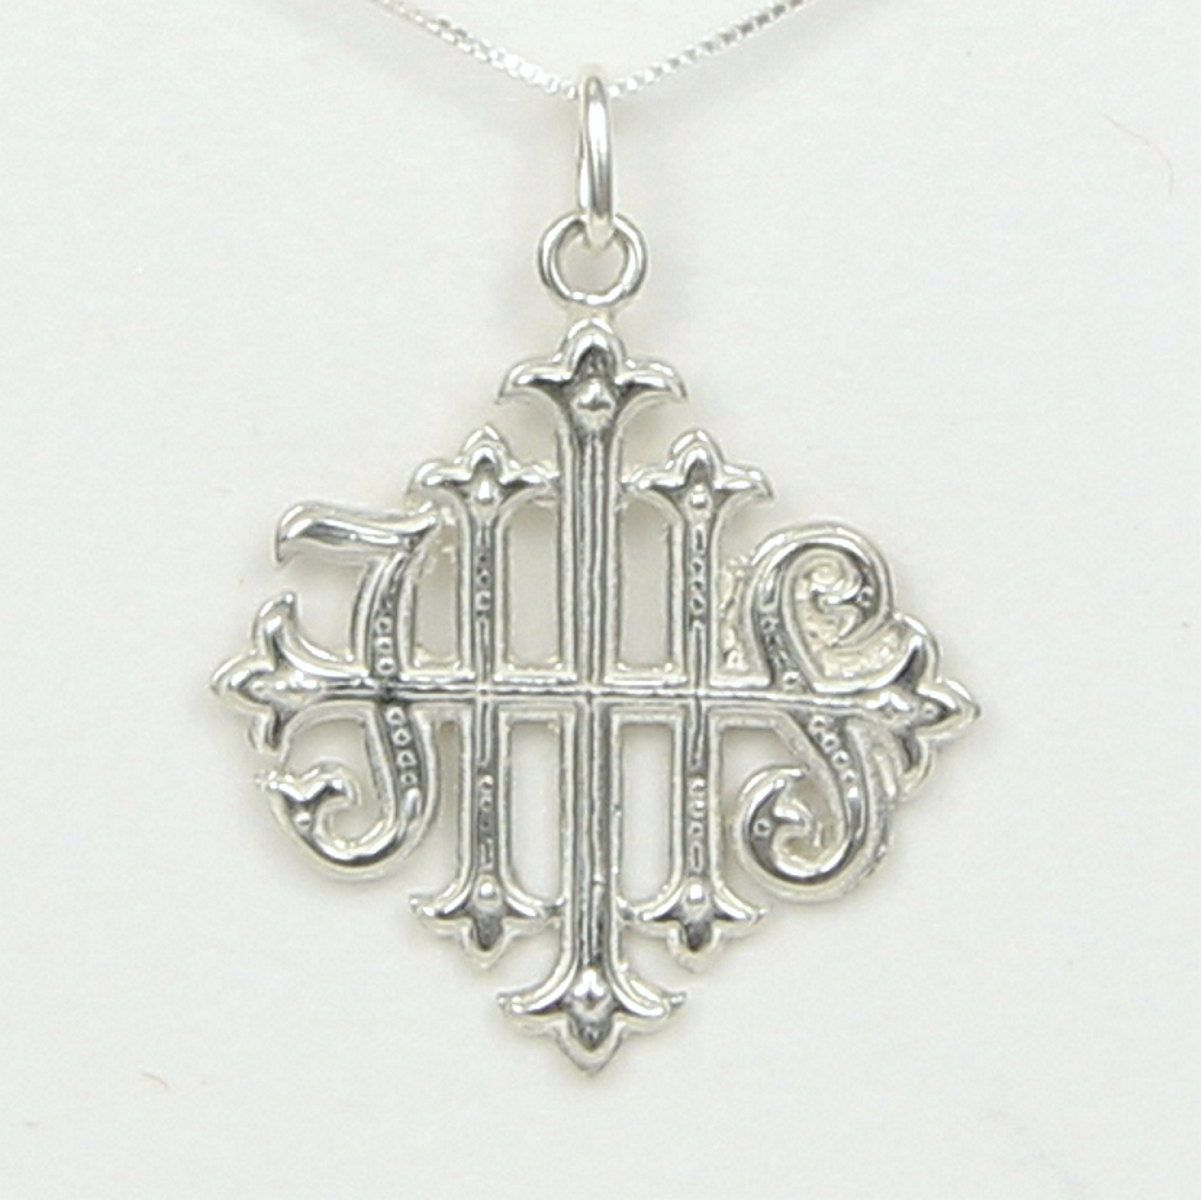 Christogram ihs cross ancient christian symbol latin for jesus christogram ihs cross ancient christian symbol latin for jesus savior of men biocorpaavc Image collections